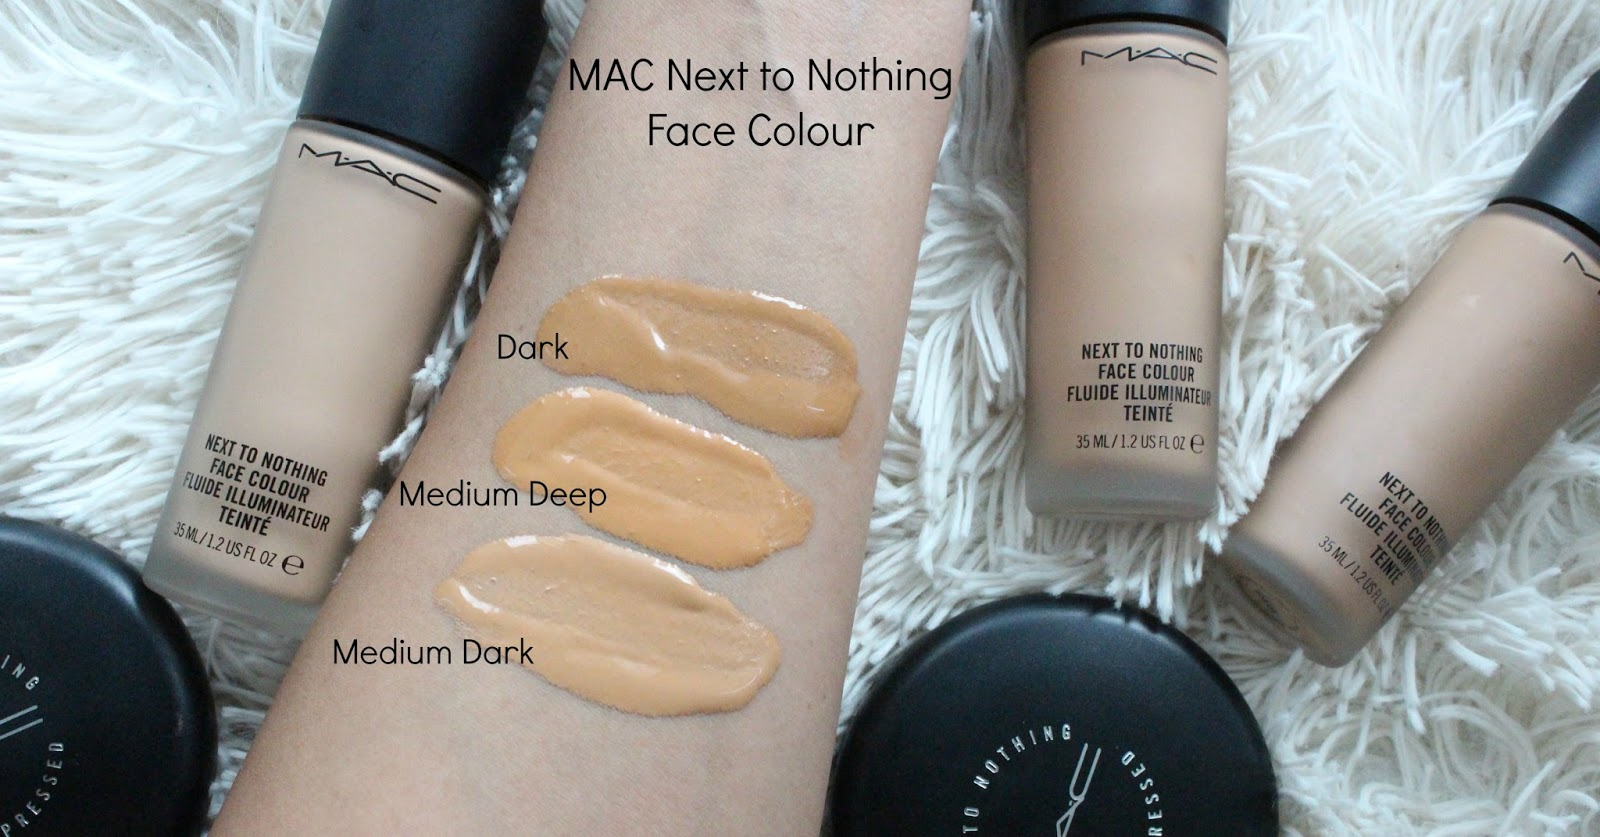 mac next to nothing face color swatches